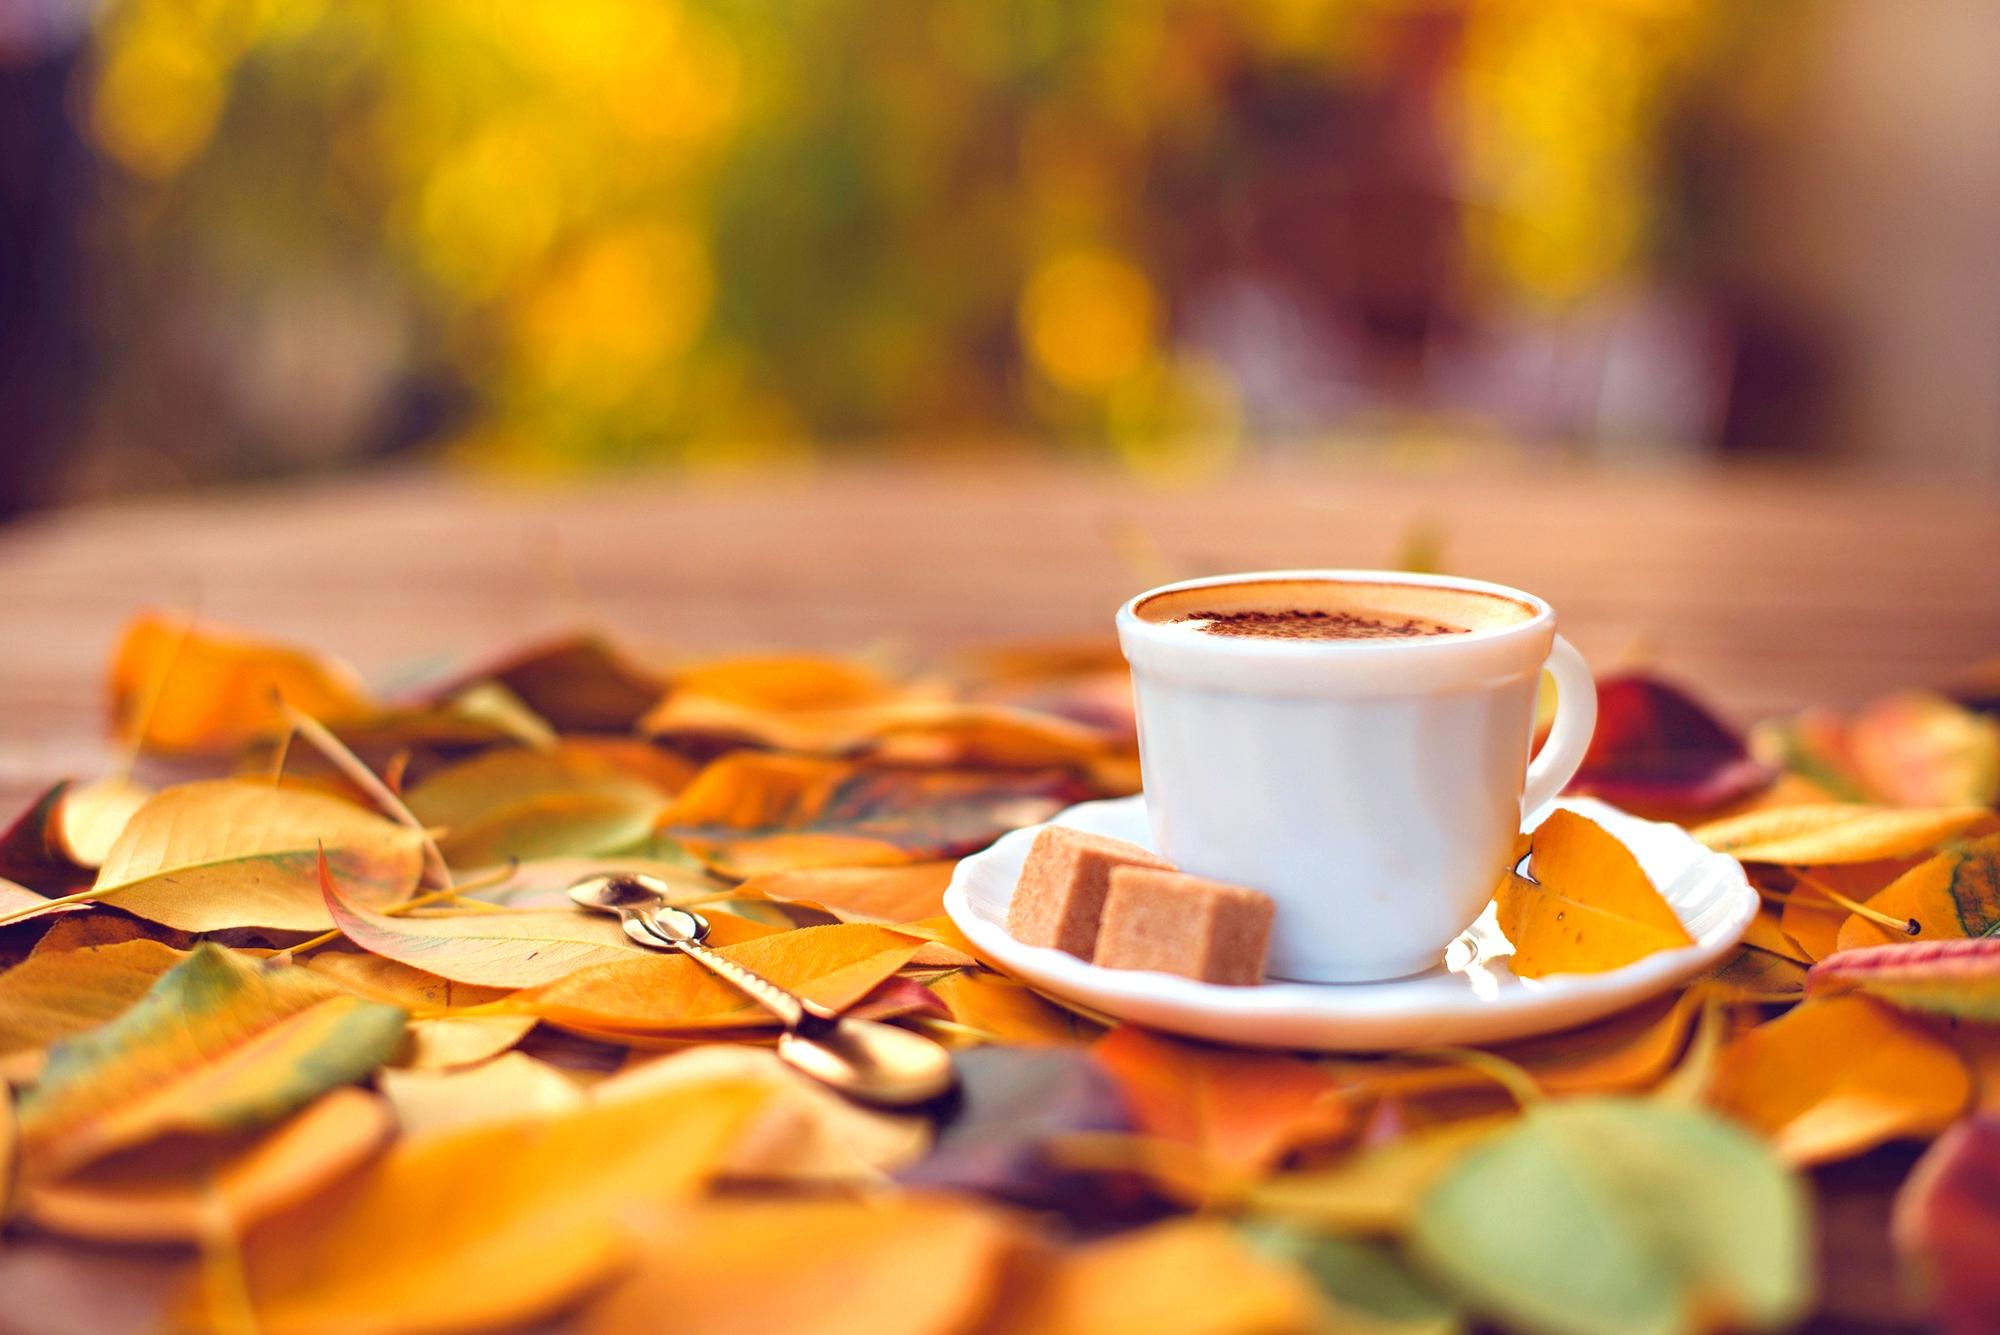 Fall Themed Wallpaper Iphone Sweet Coffee And An Autumn Carpet Hd Wallpaper